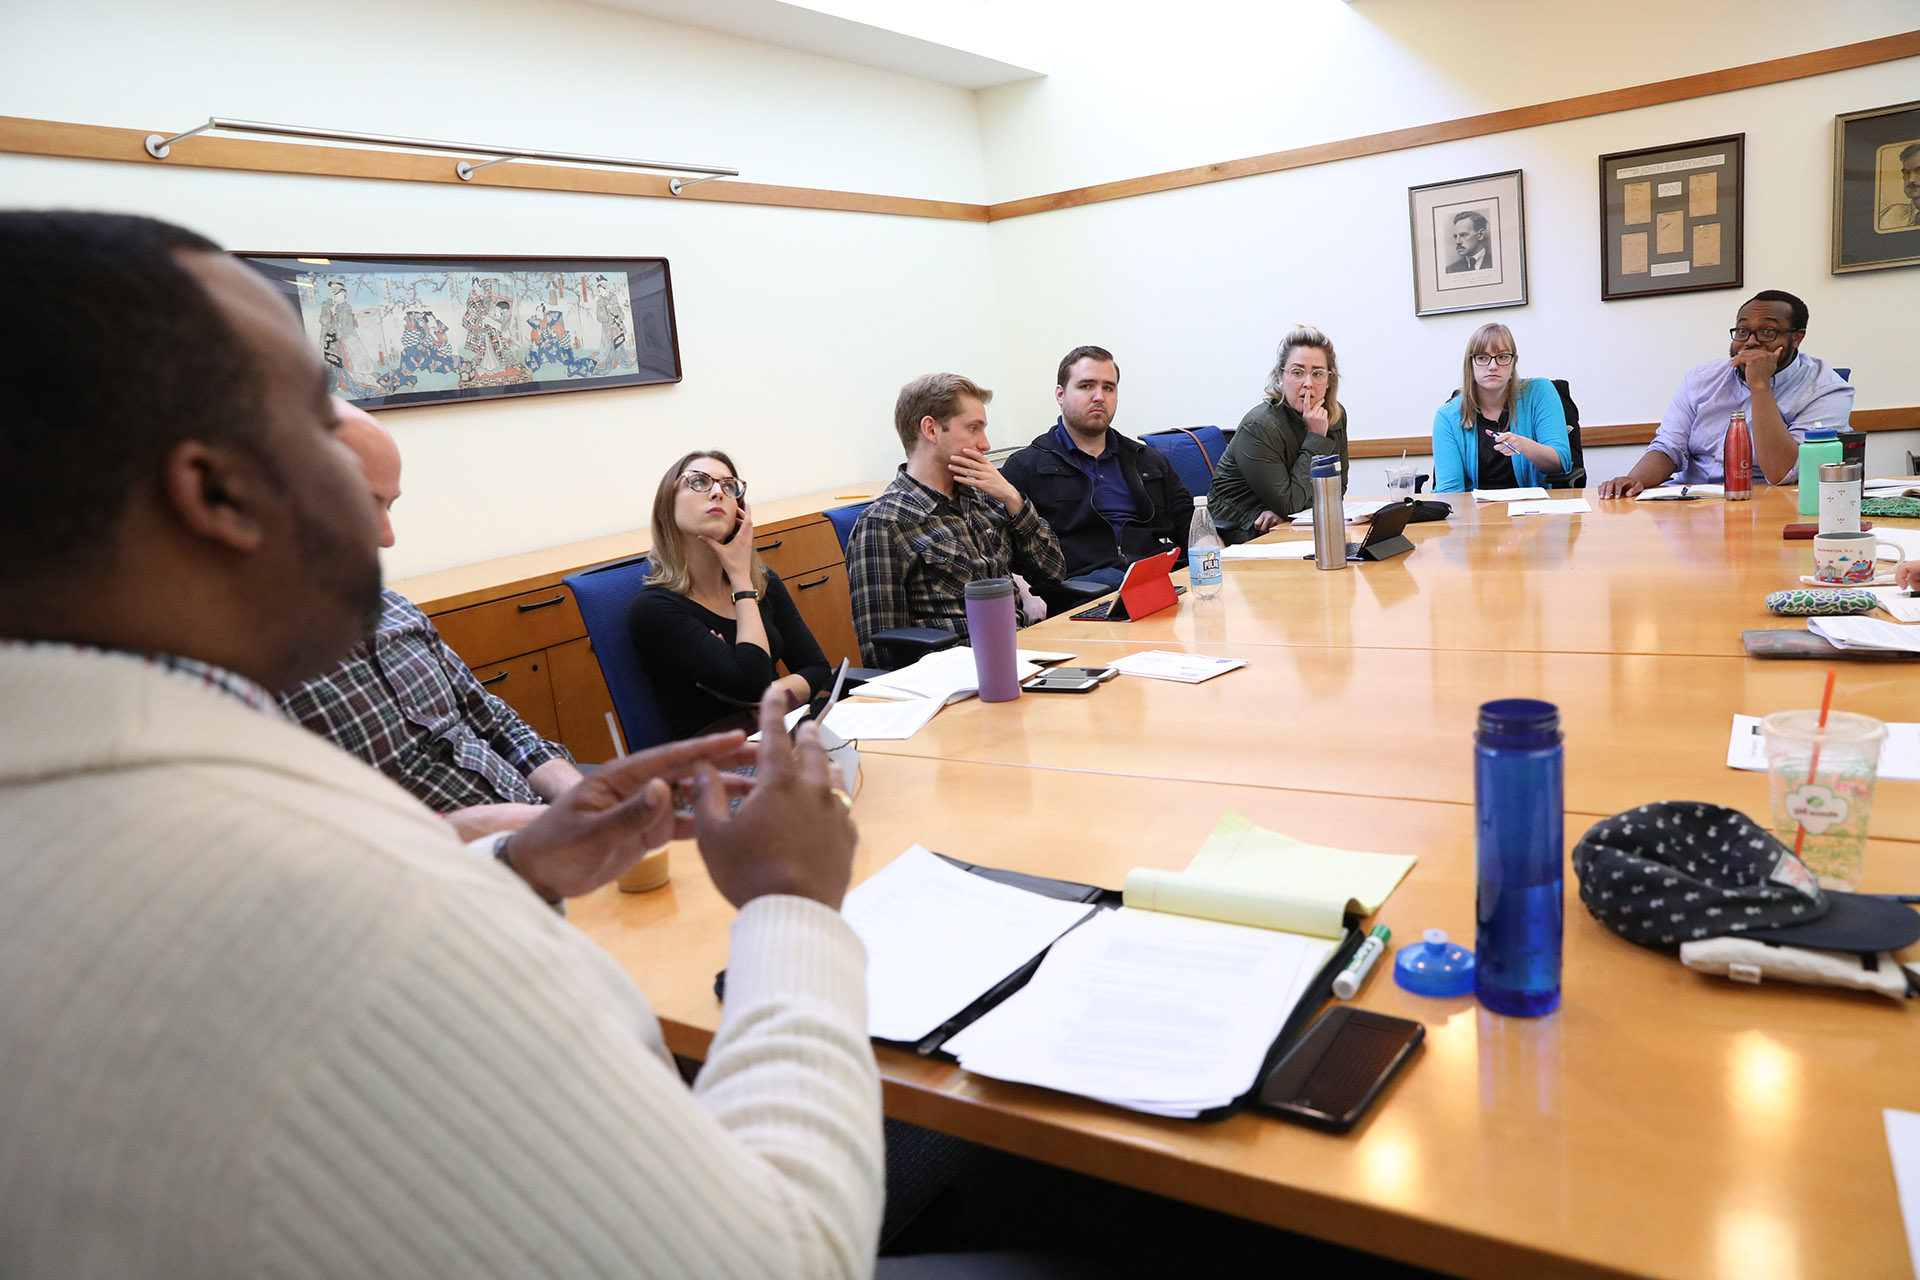 Assistant Dean Kelvin Dinkins, Jr. leads a Theater Management seminar, Yale School of Drama, 2018. Photo by Joan Marcus.